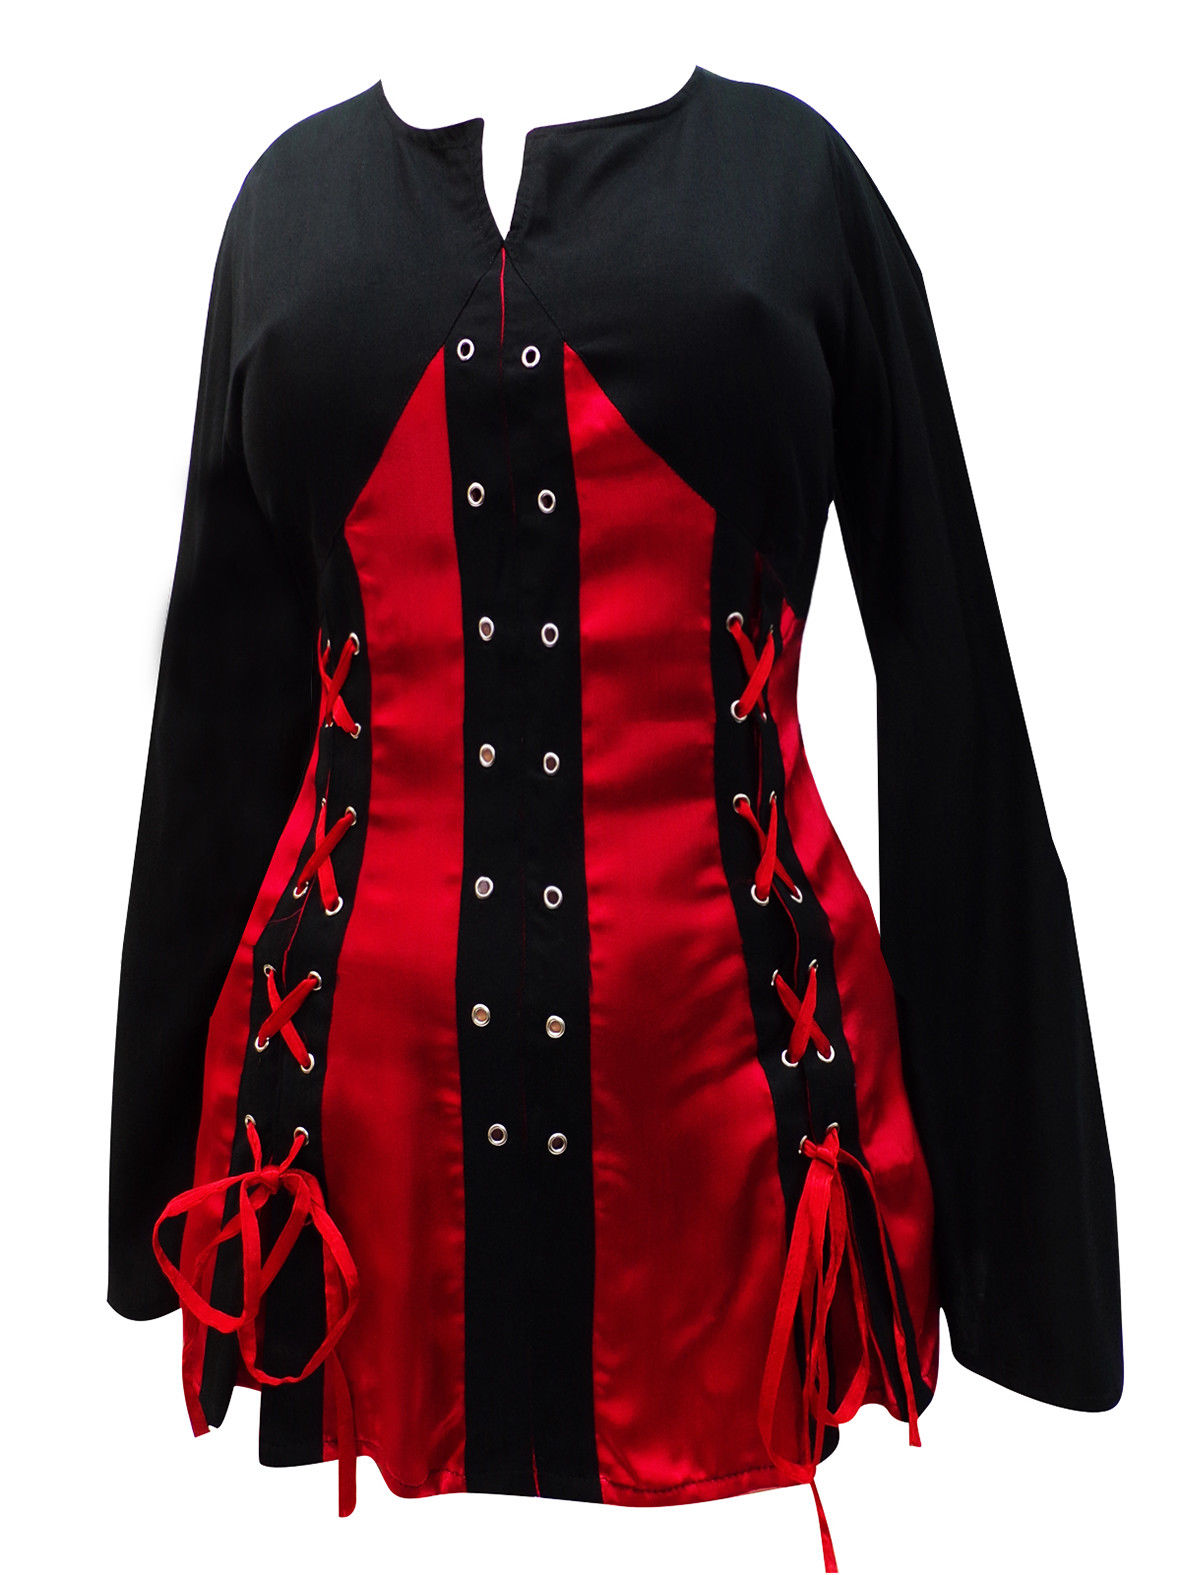 Black Red Long Medieval Pirate Top Blouse 10 12 14 16 18 20 22 24